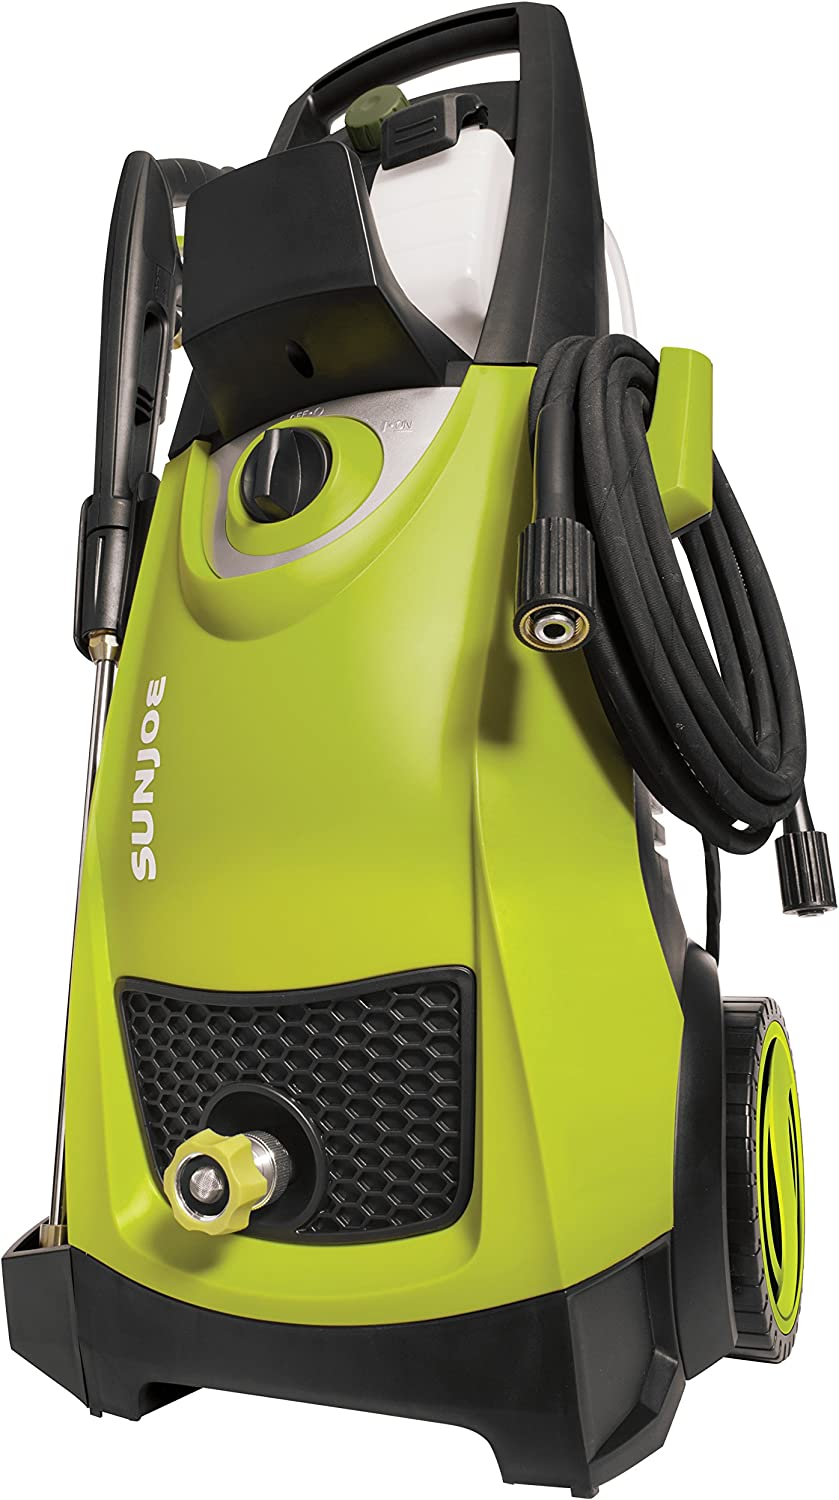 Sun Joe 2030 MAX PSI 1.76 GPM 14.5 Amp Electric Pressure Washer